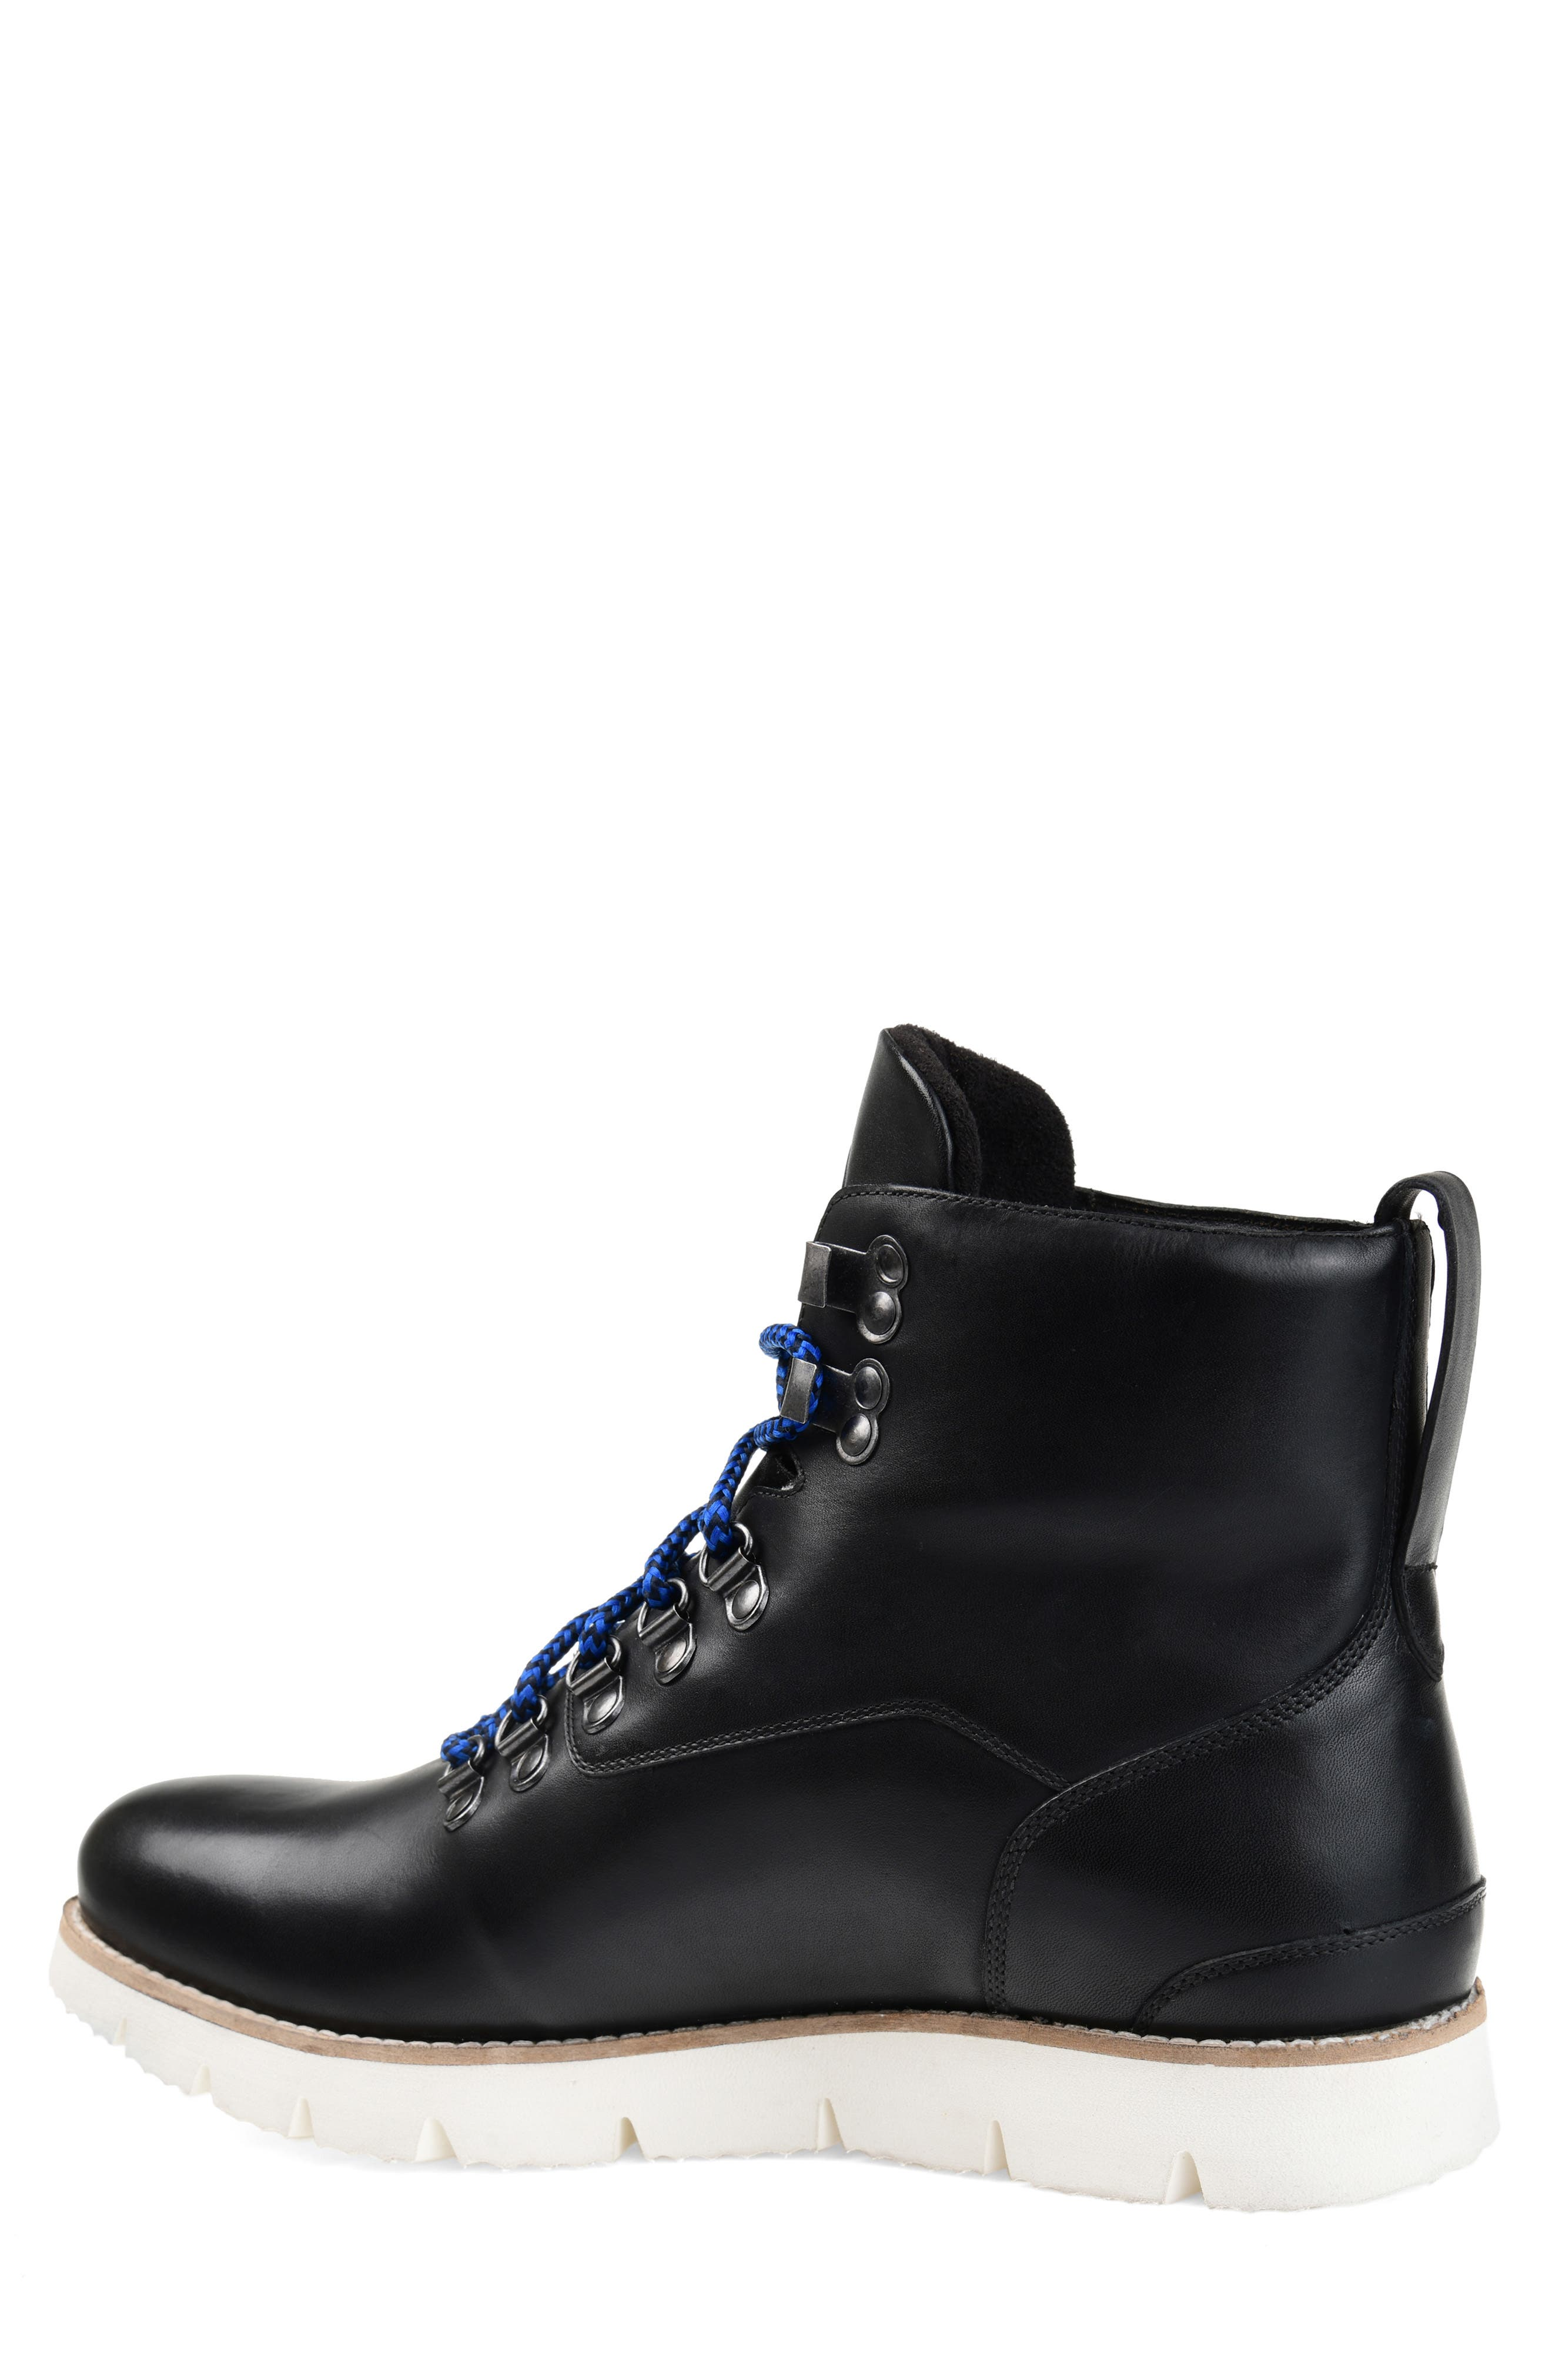 THOMAS AND VINE, Siege Boot, Alternate thumbnail 2, color, BLACK LEATHER